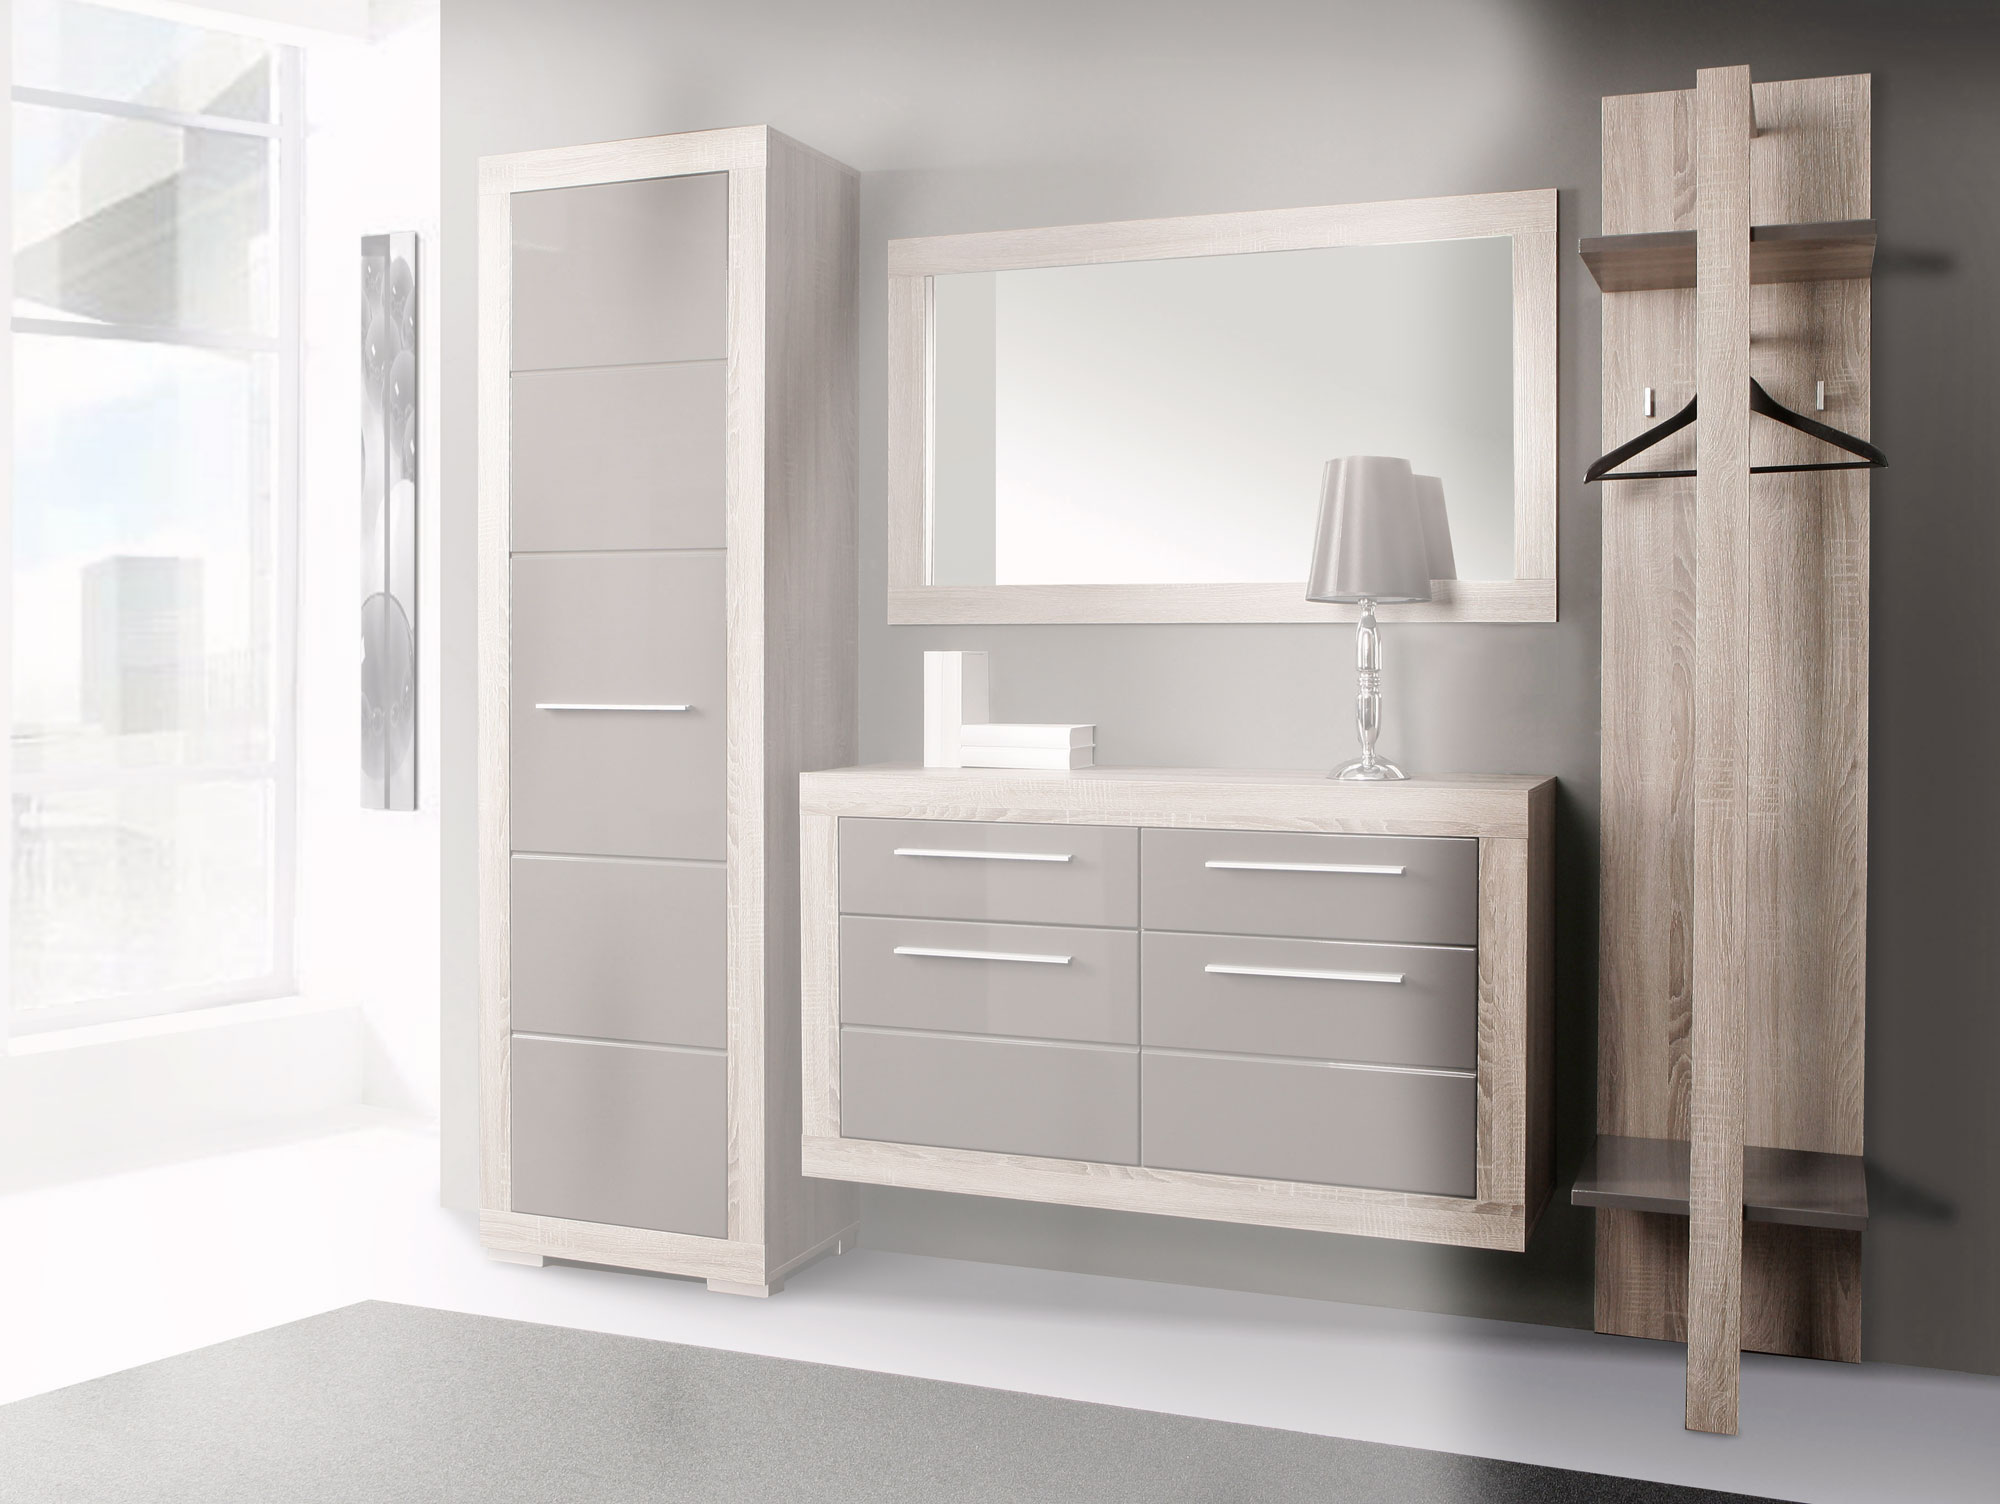 amberg garderobenpaneel eiche sonoma grau grau hochgl. Black Bedroom Furniture Sets. Home Design Ideas